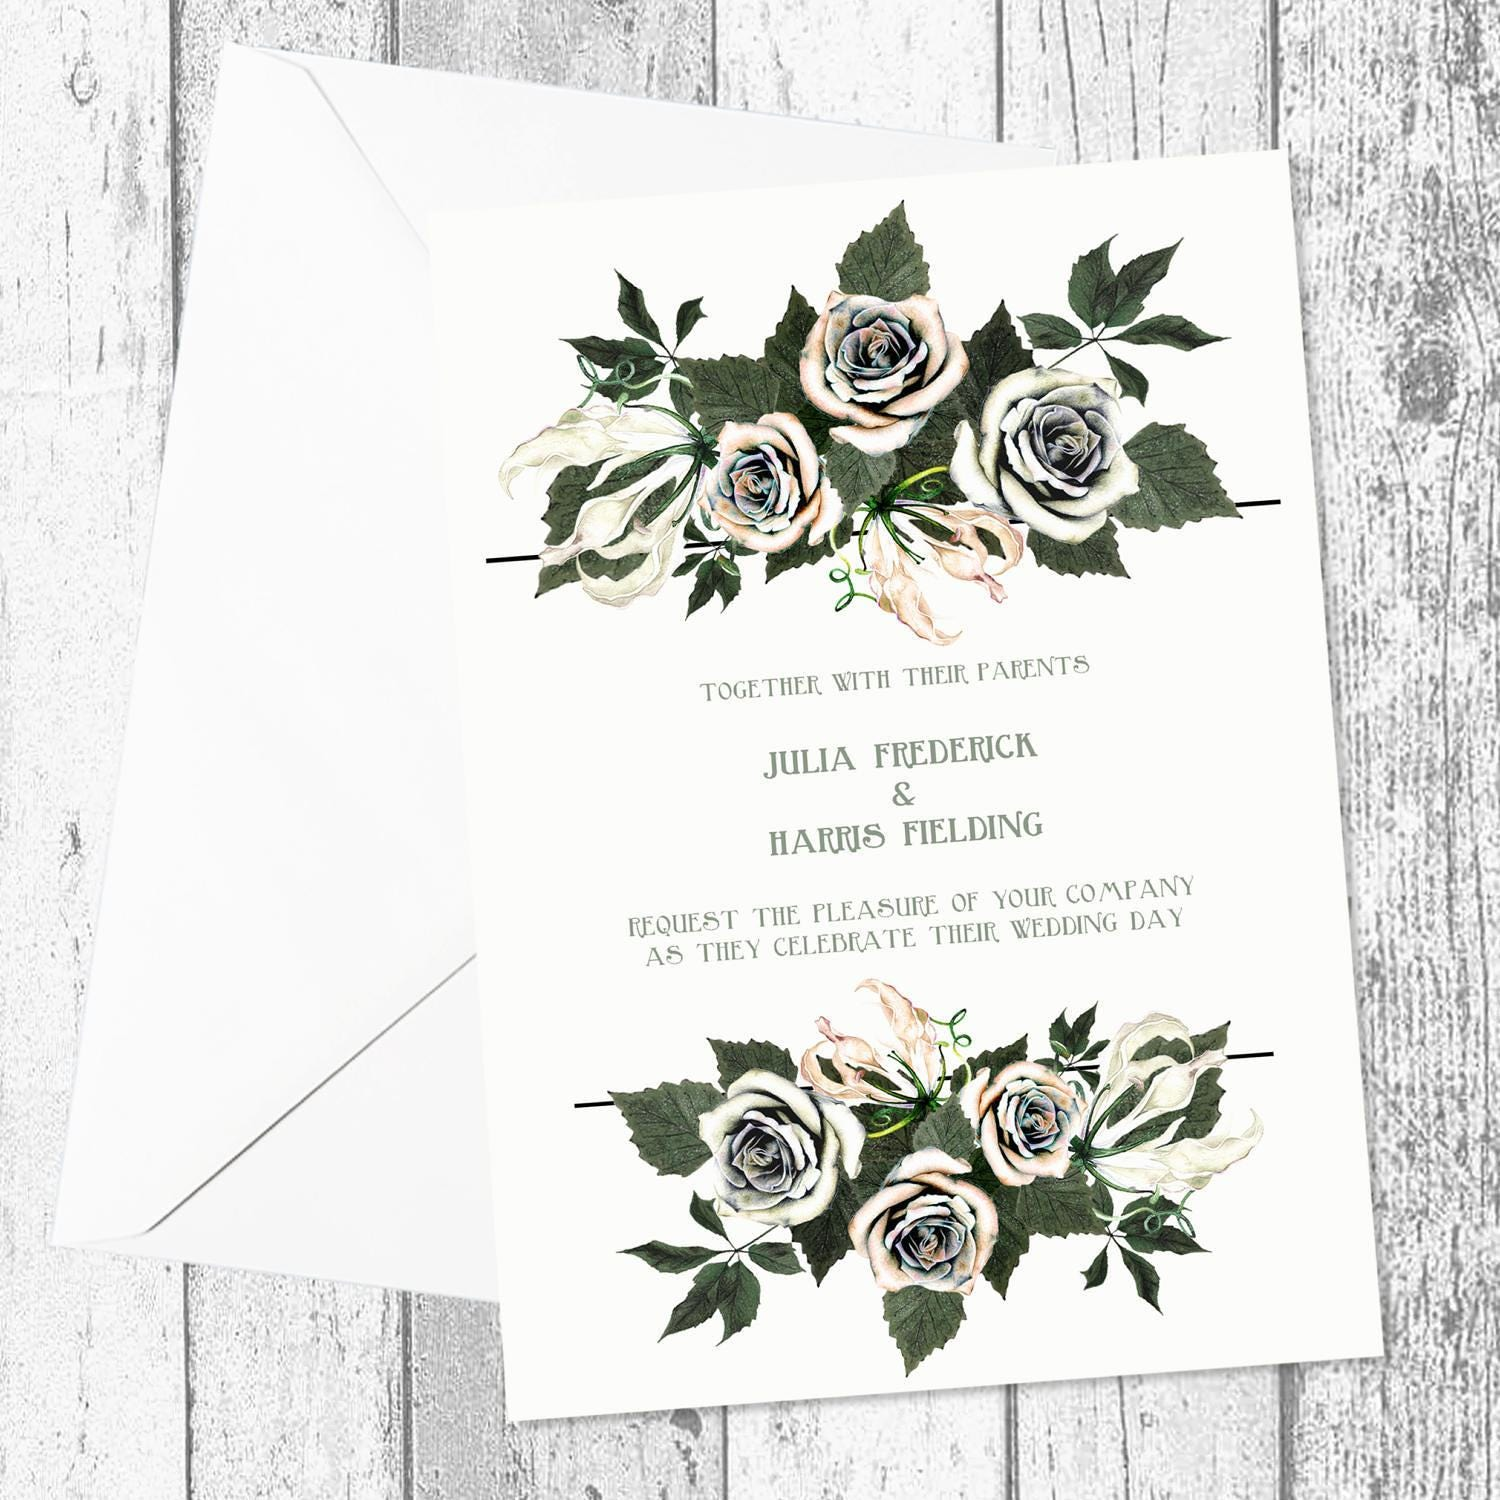 Champagne and Peach Floral Greenery Wedding Invitations A5 Flat Printed Single and Double Sided with Envelopes and as Printable Digital File